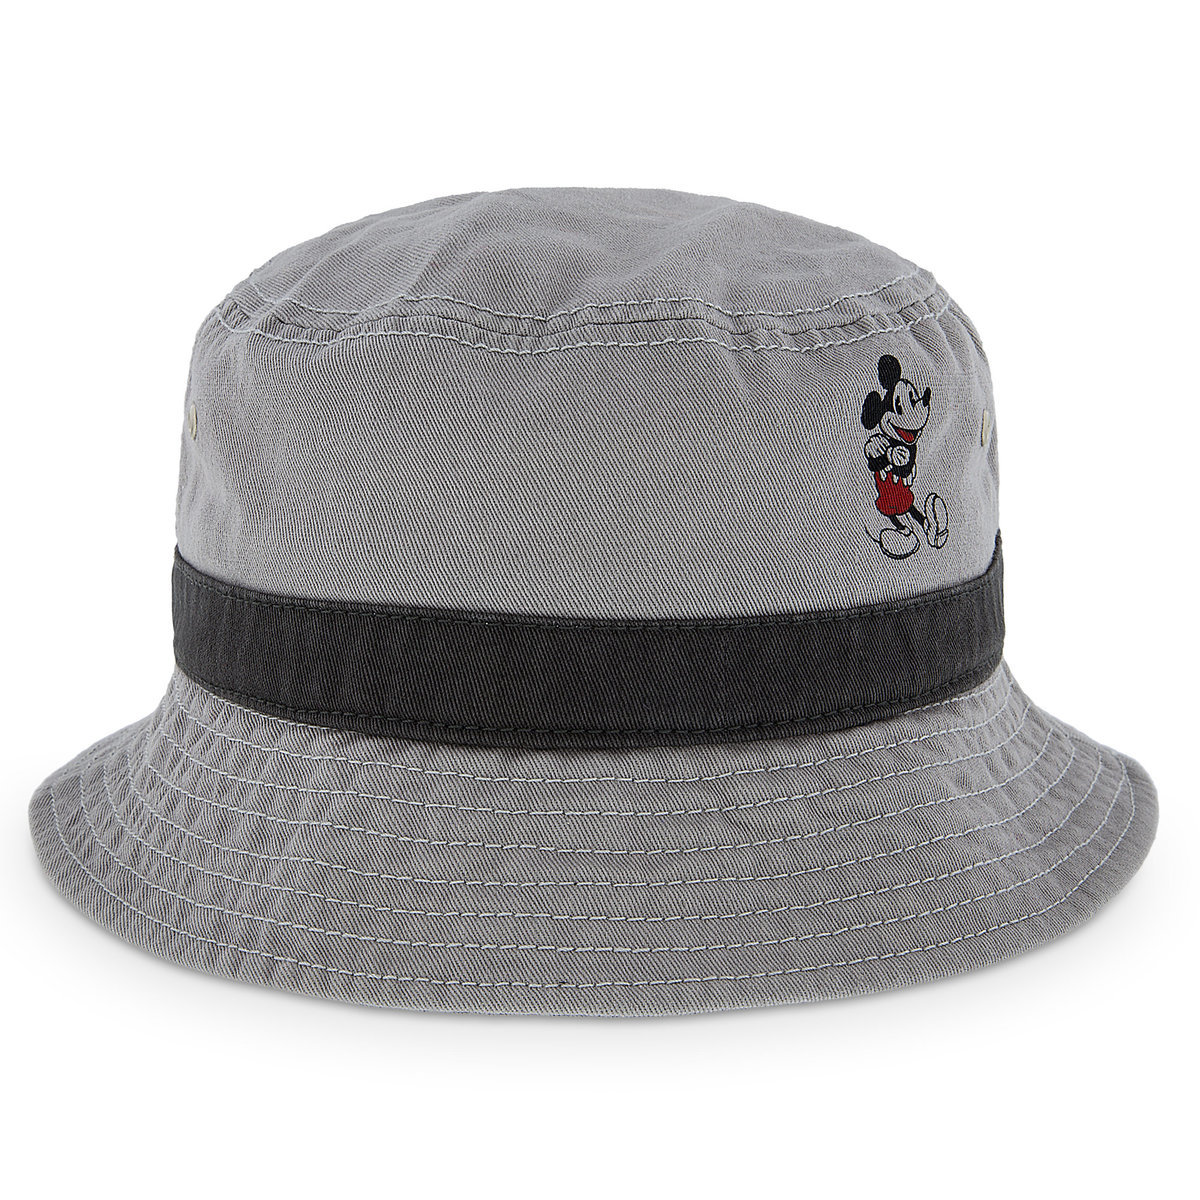 Disney Adult Bucket Hat - Timeless Mickey Mouse - Grey 52301fd62bb